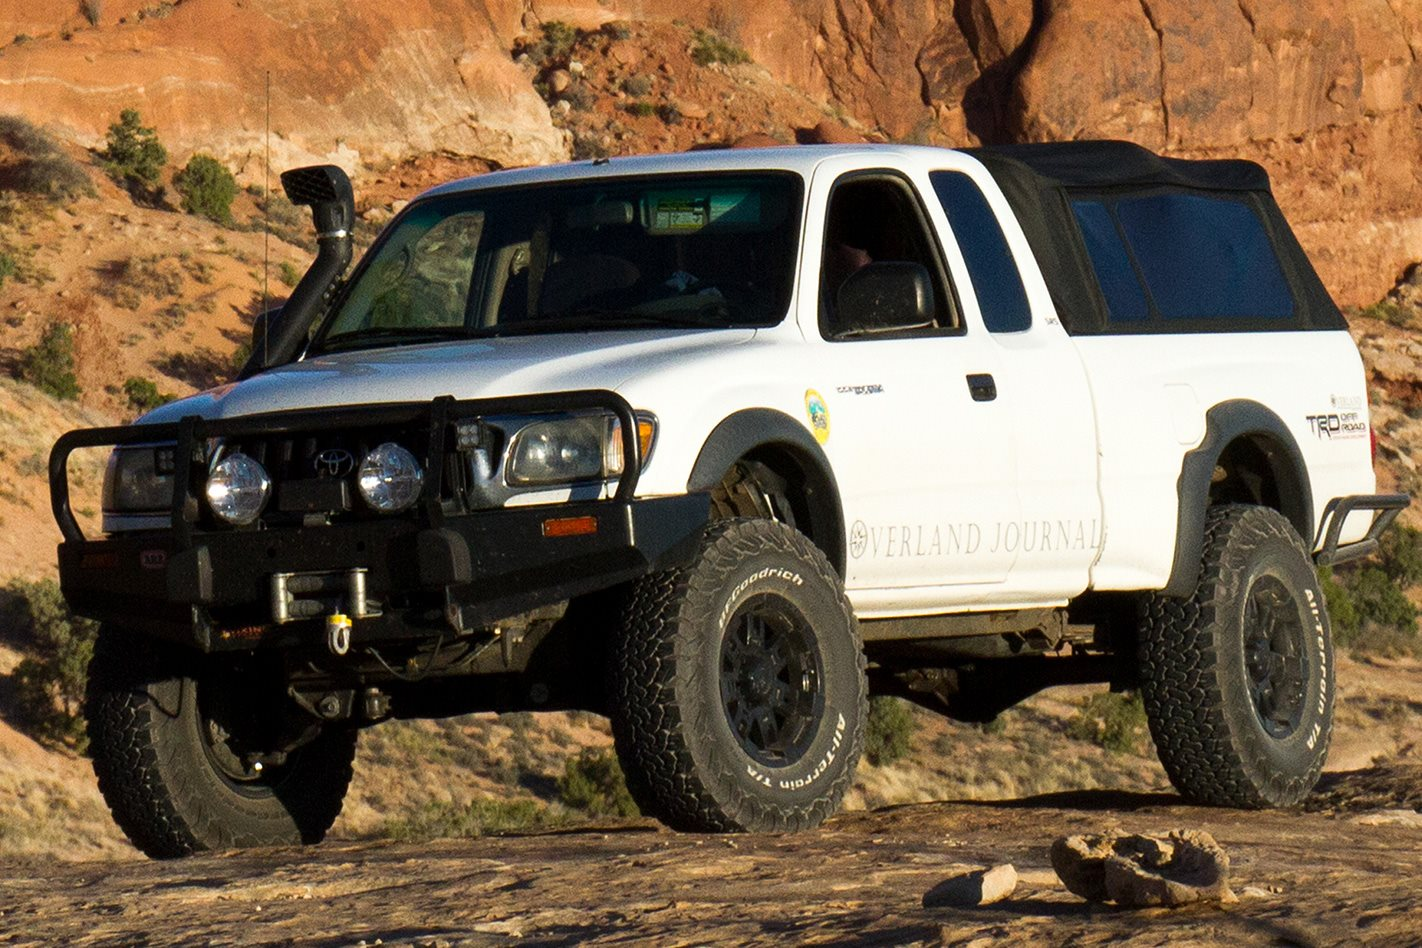 BFGoodrich All-Terrain KO2 tyres on a custom Toyota